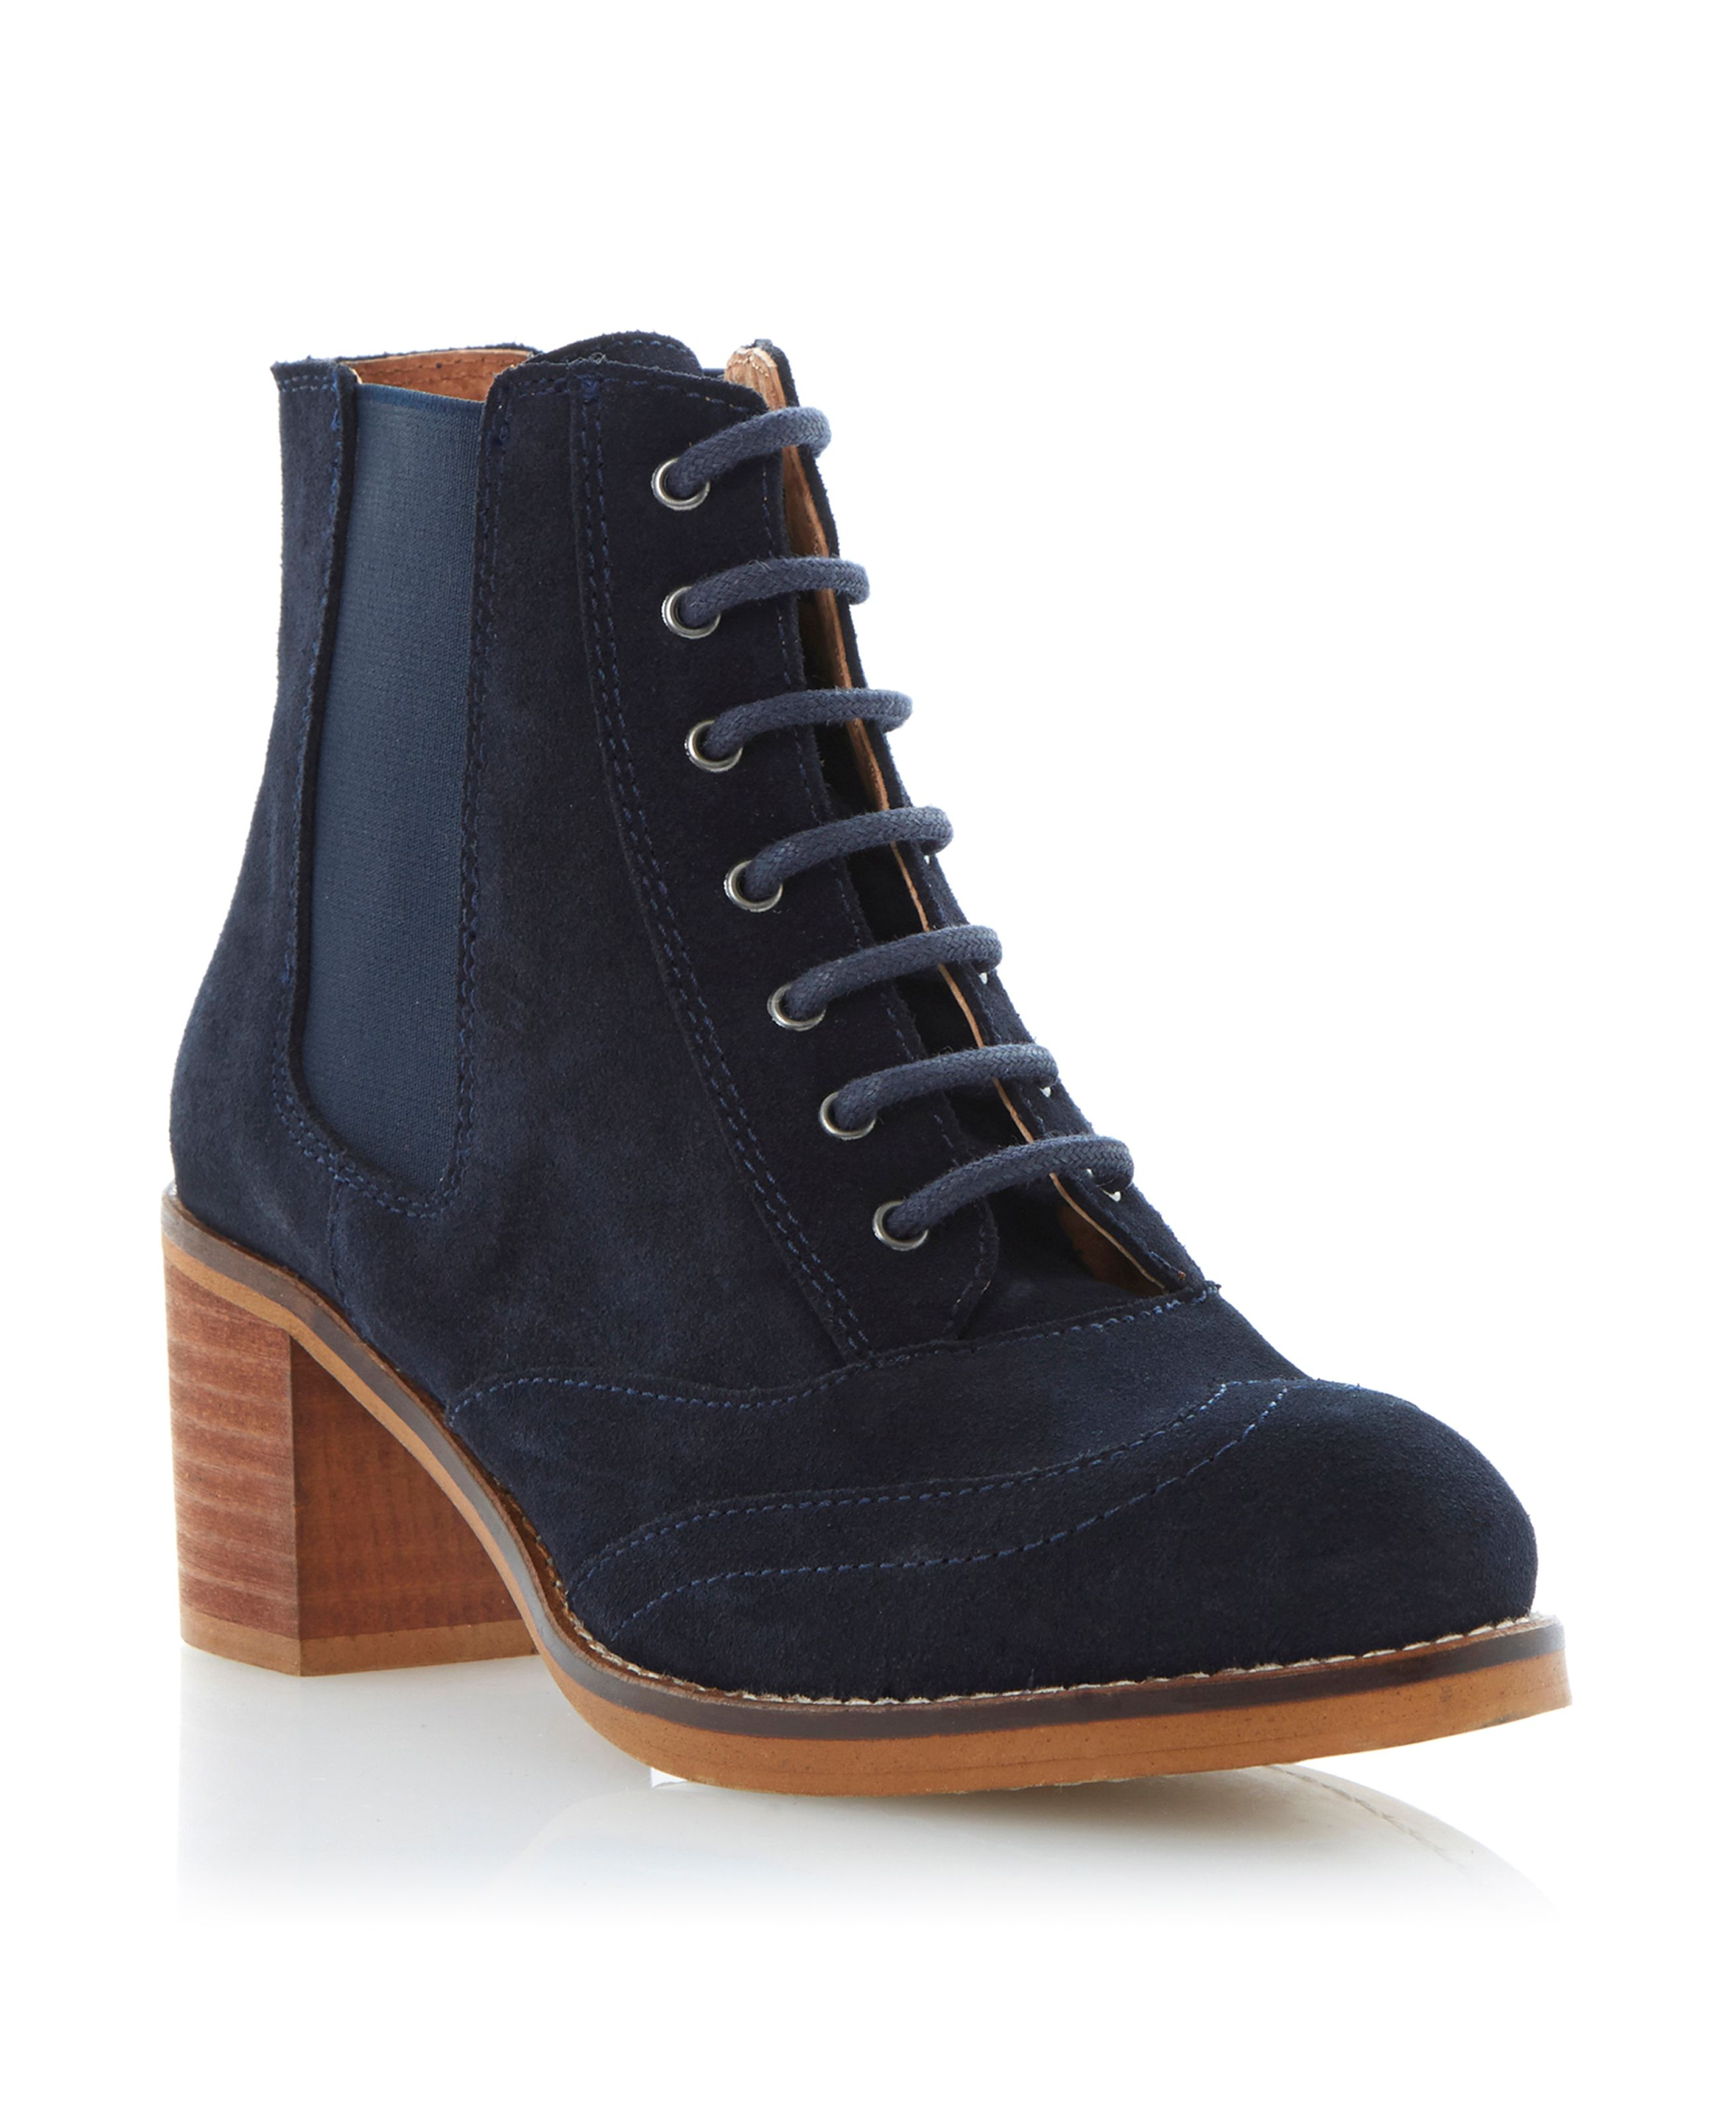 Pontins heeled lace up ankle boots